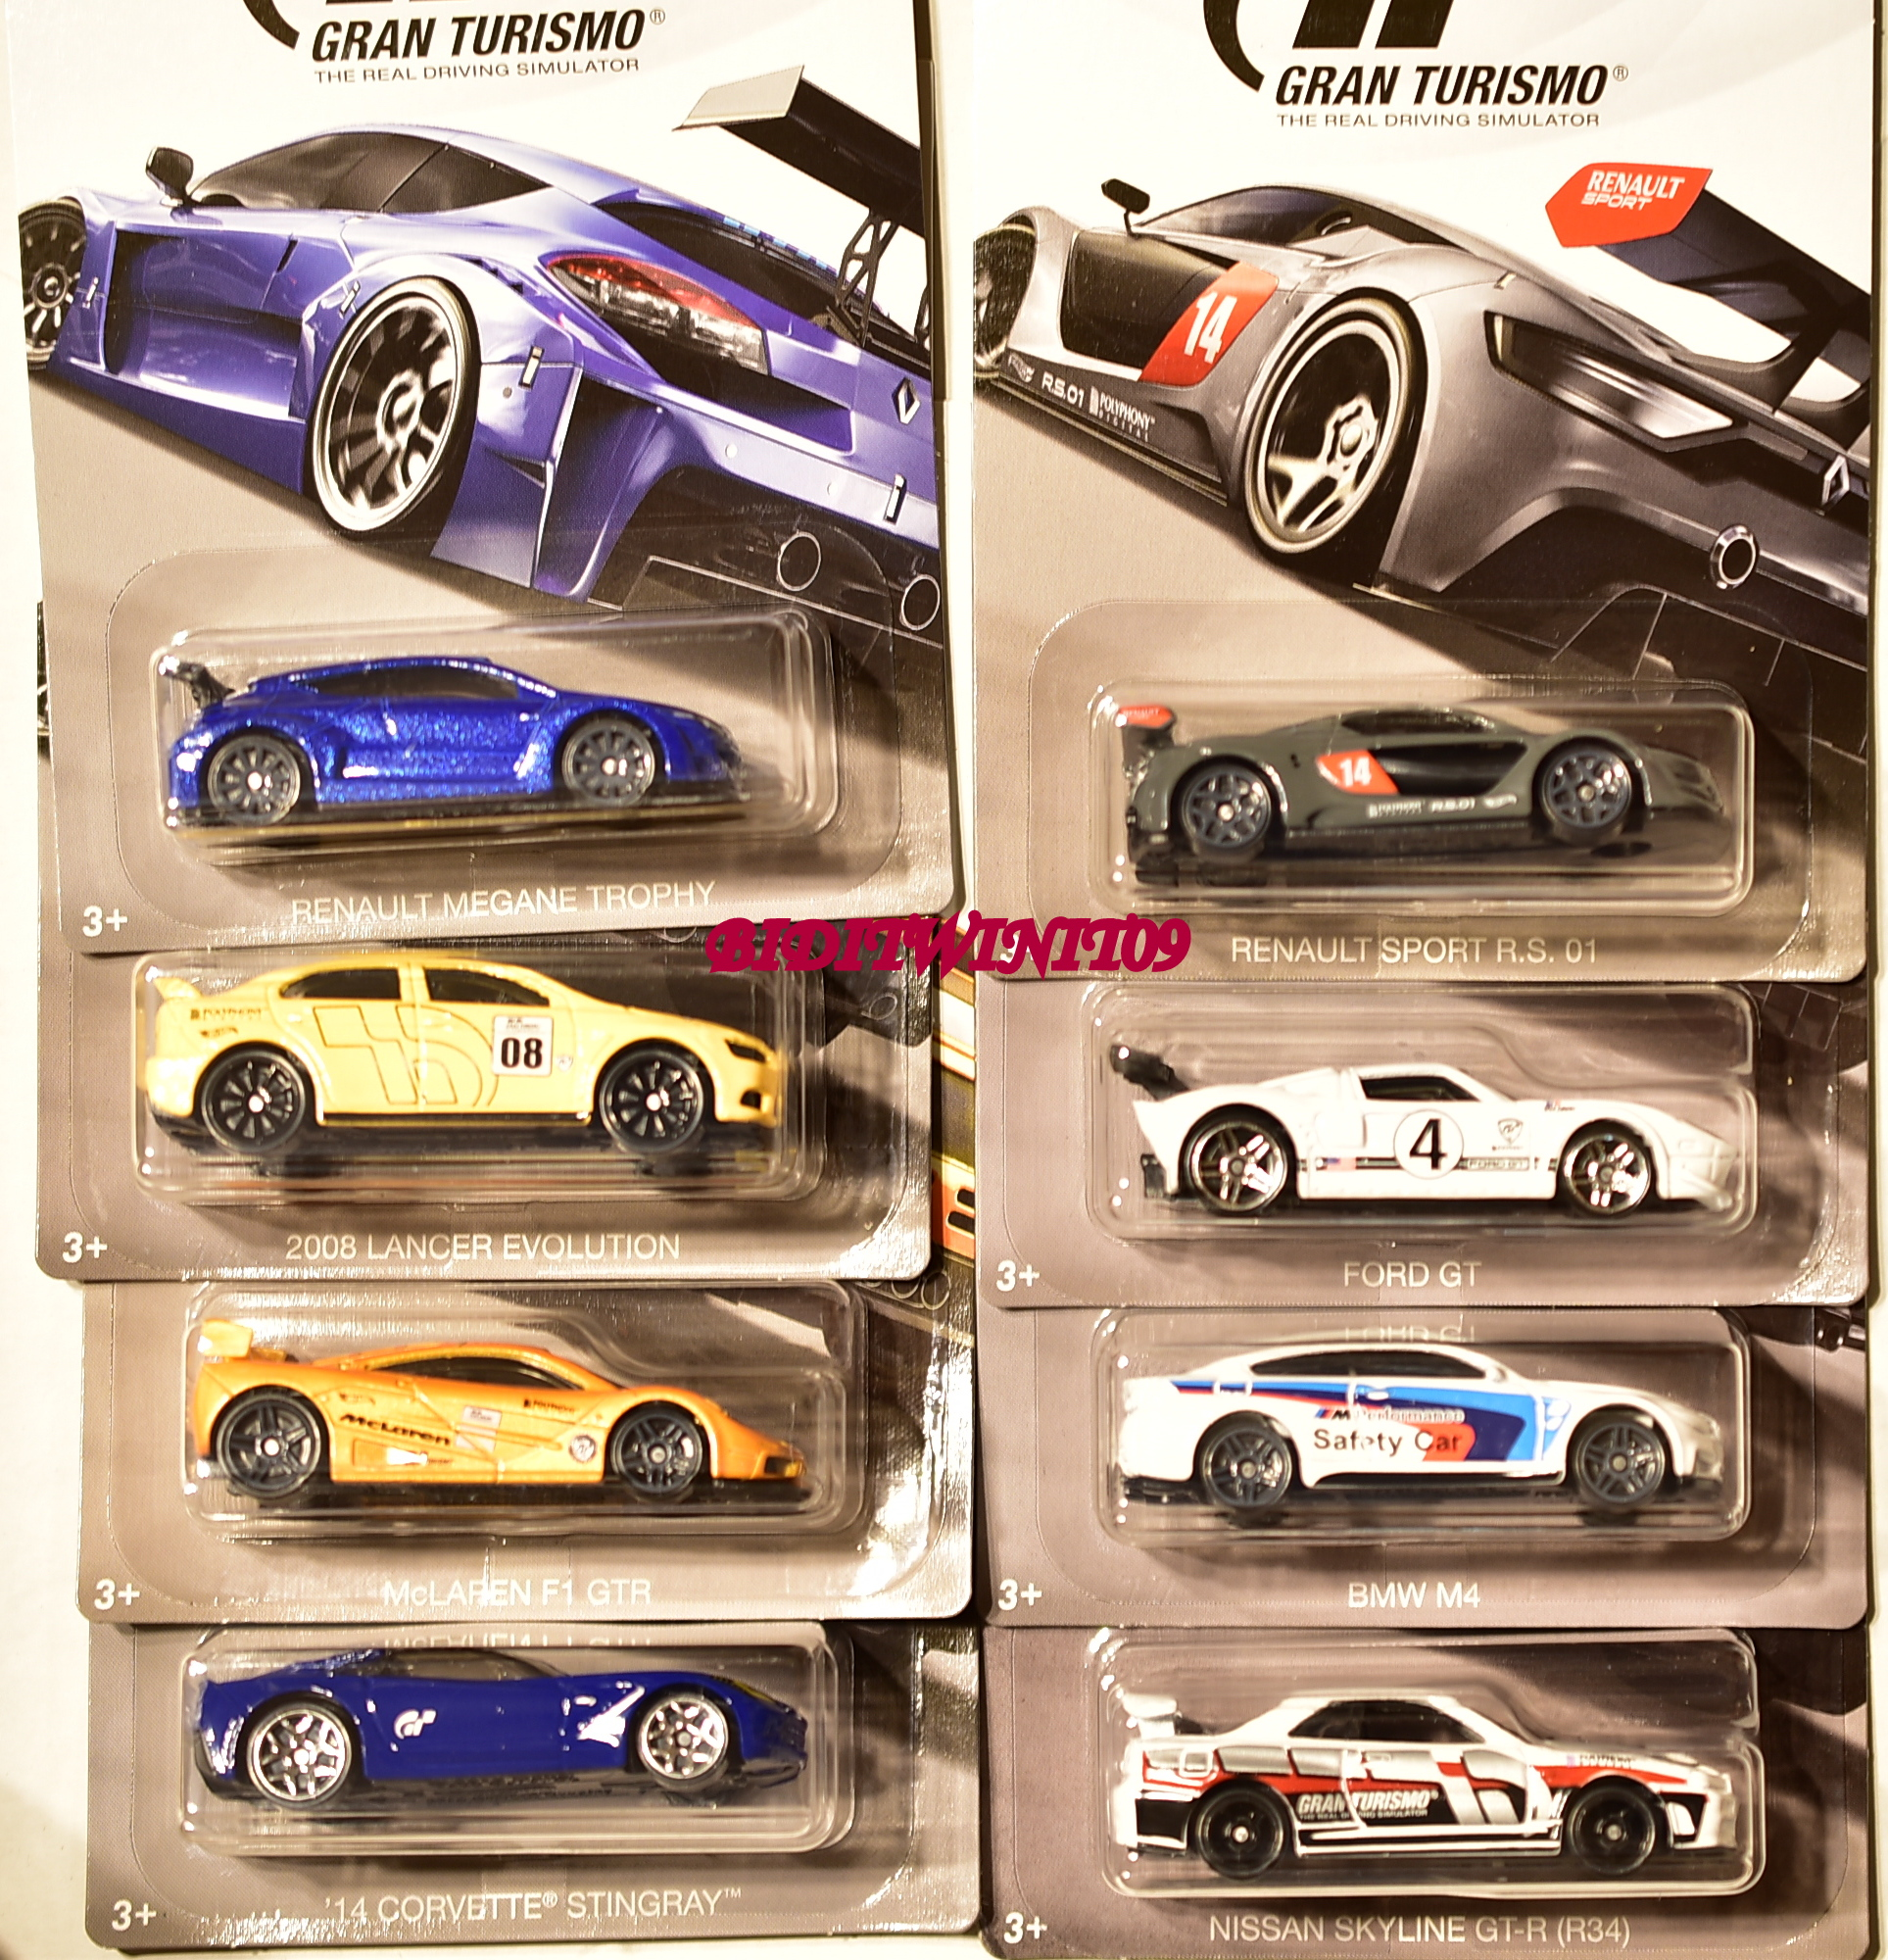 HOT WHEELS 2018 GRAN TURISMO SET OF 8 NISSAN LANCER CORVETTE FORD RENAULT